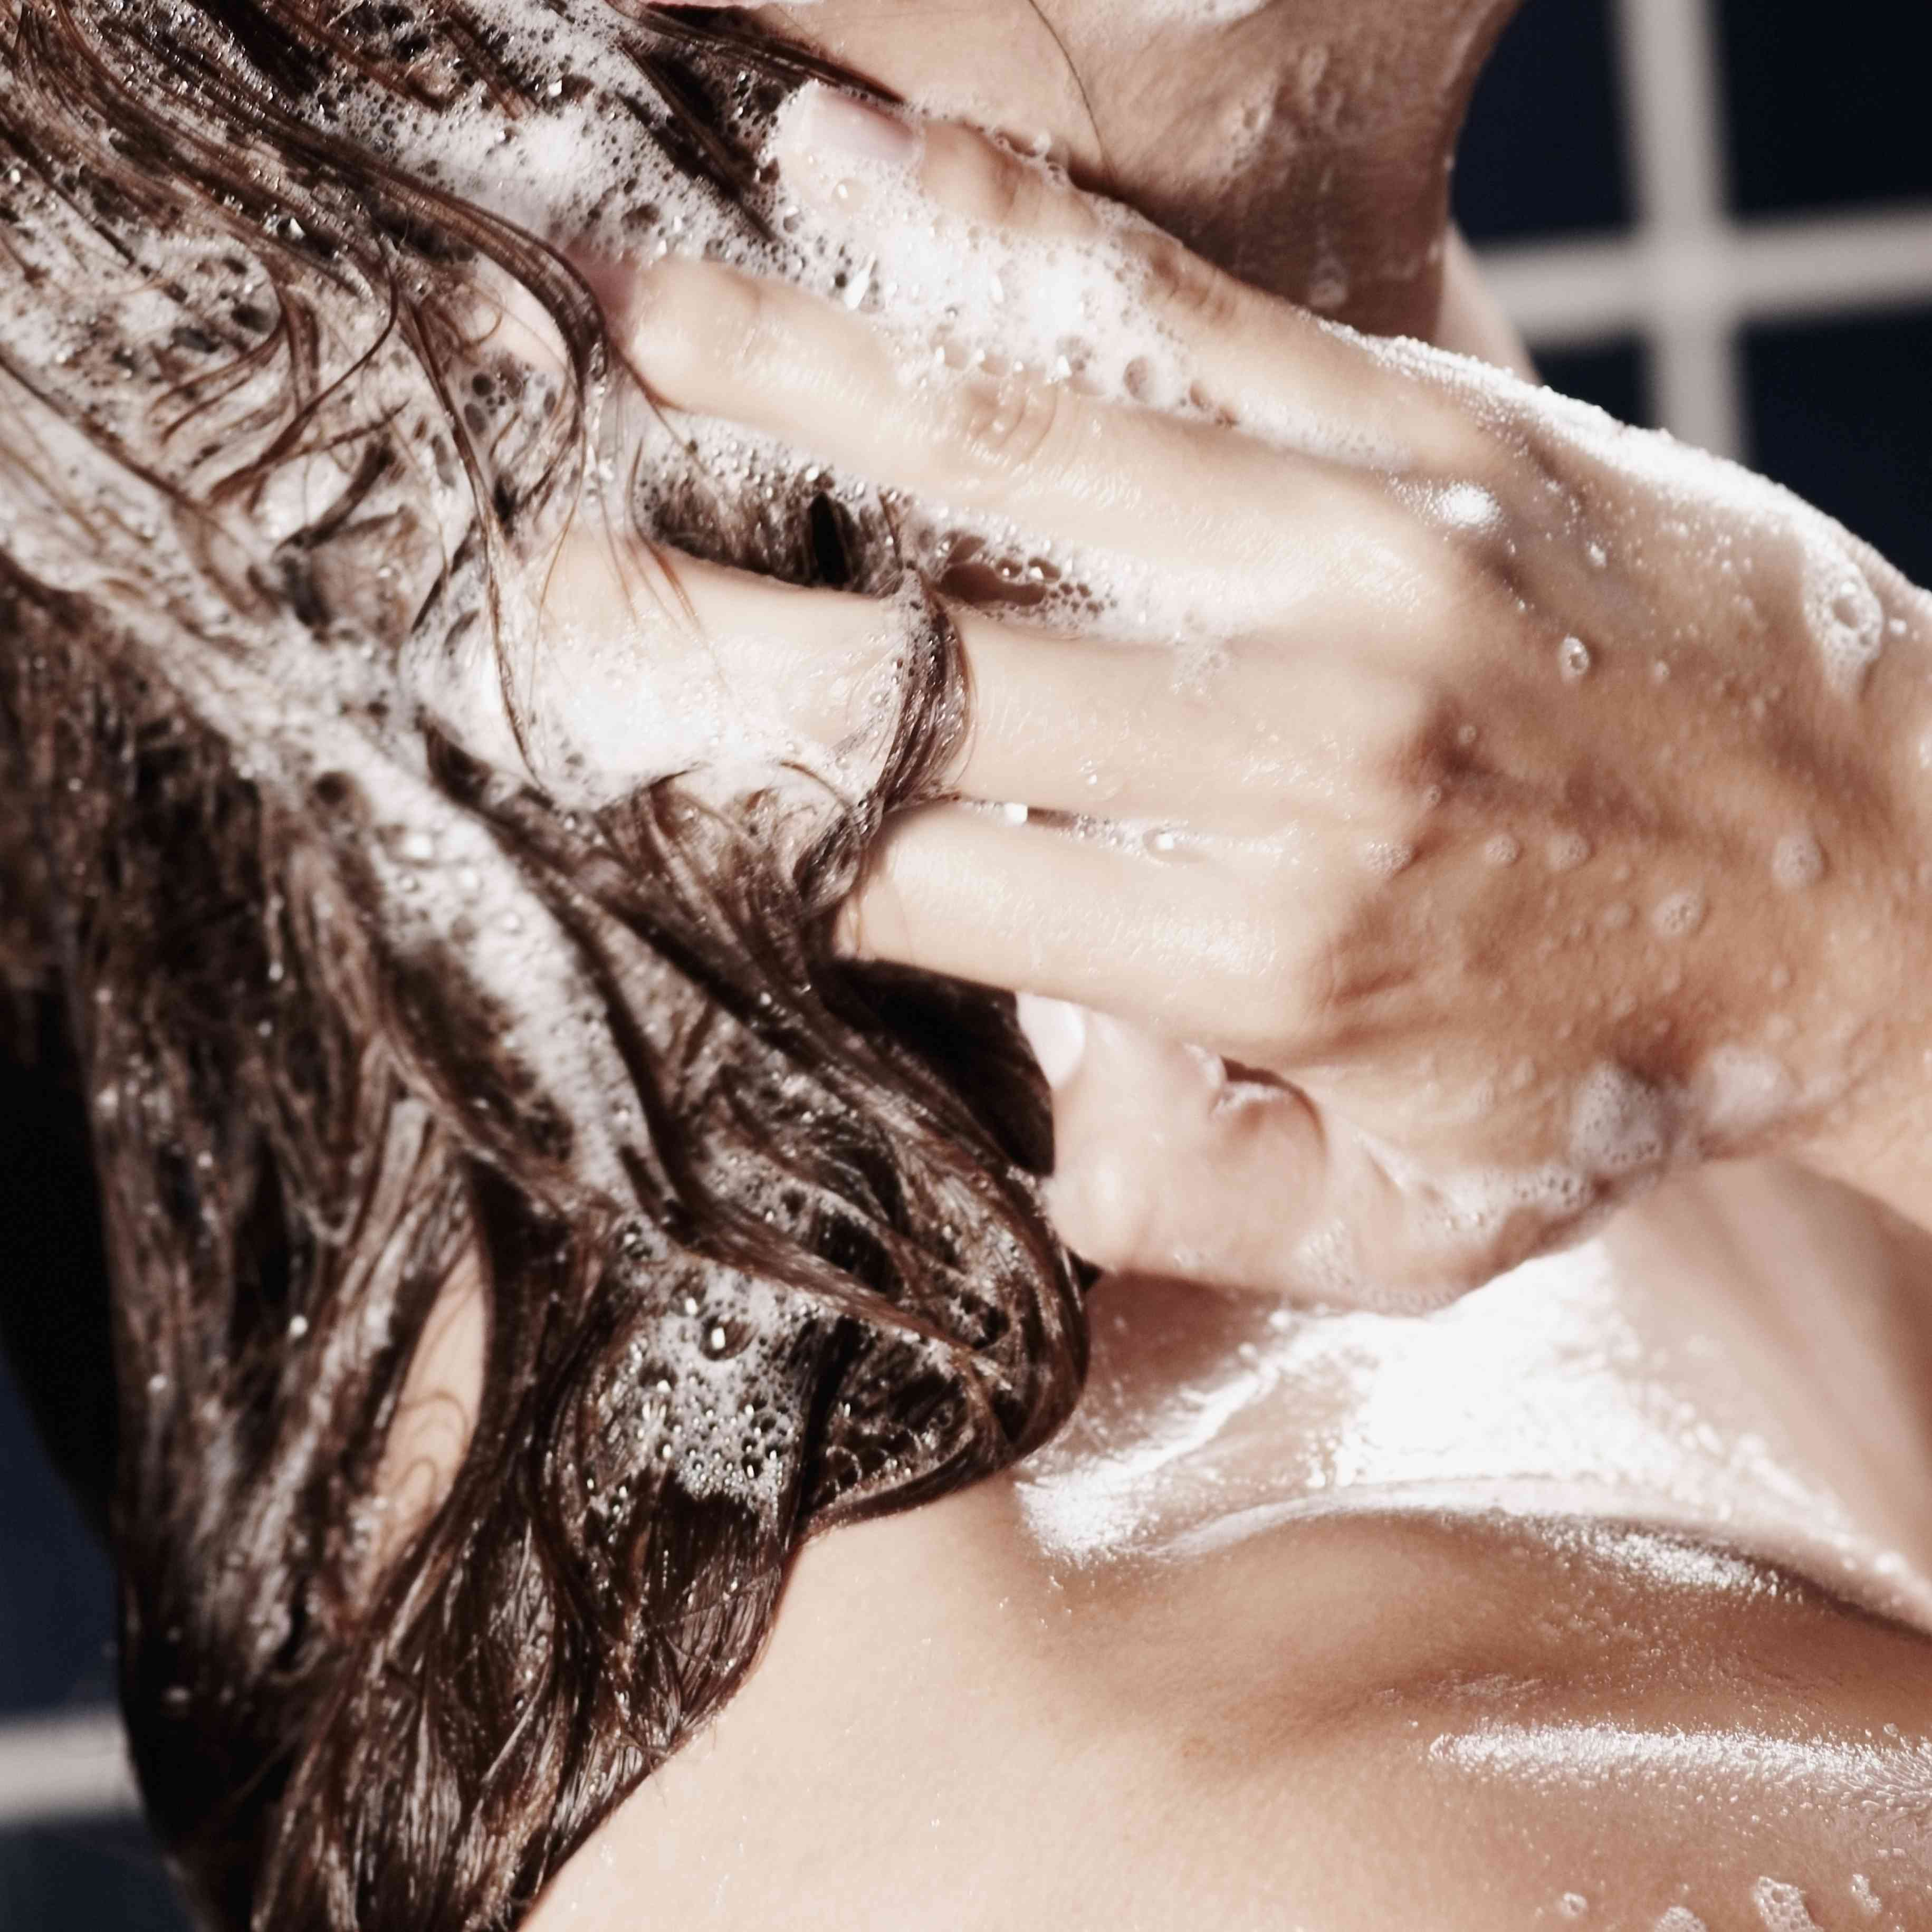 Side profile of a young woman washing her hair with shampoo